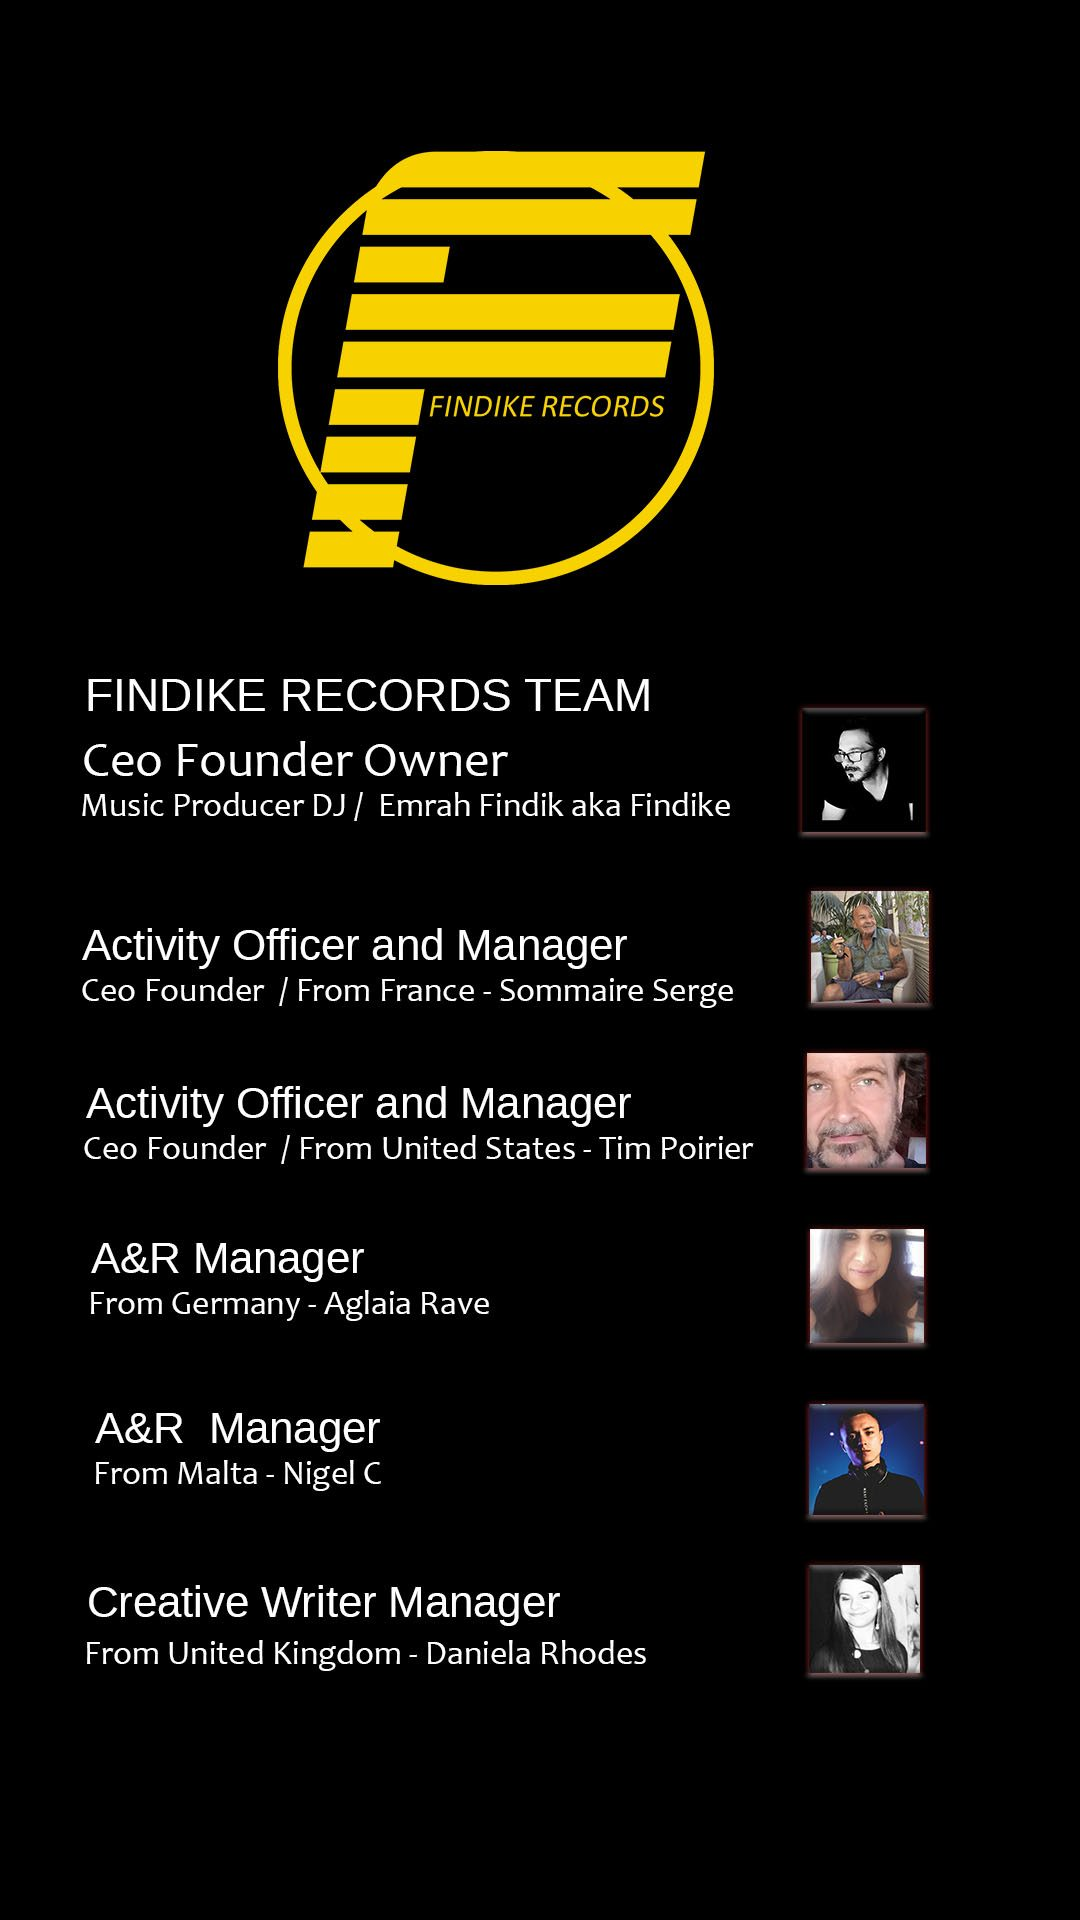 findike records team